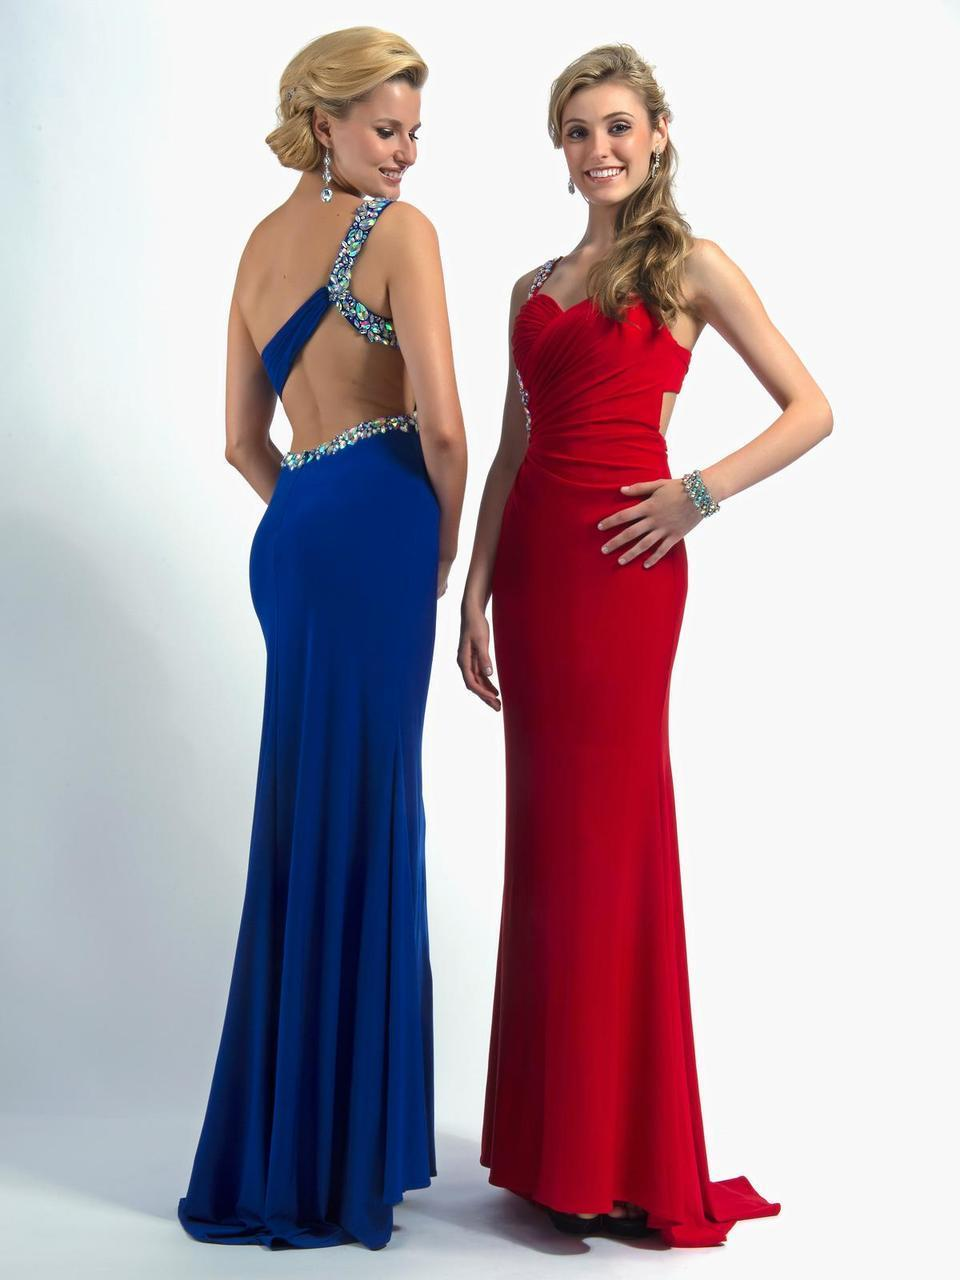 Clarisse - 2364 Bejeweled Sweetheart Dress in Blue and Red